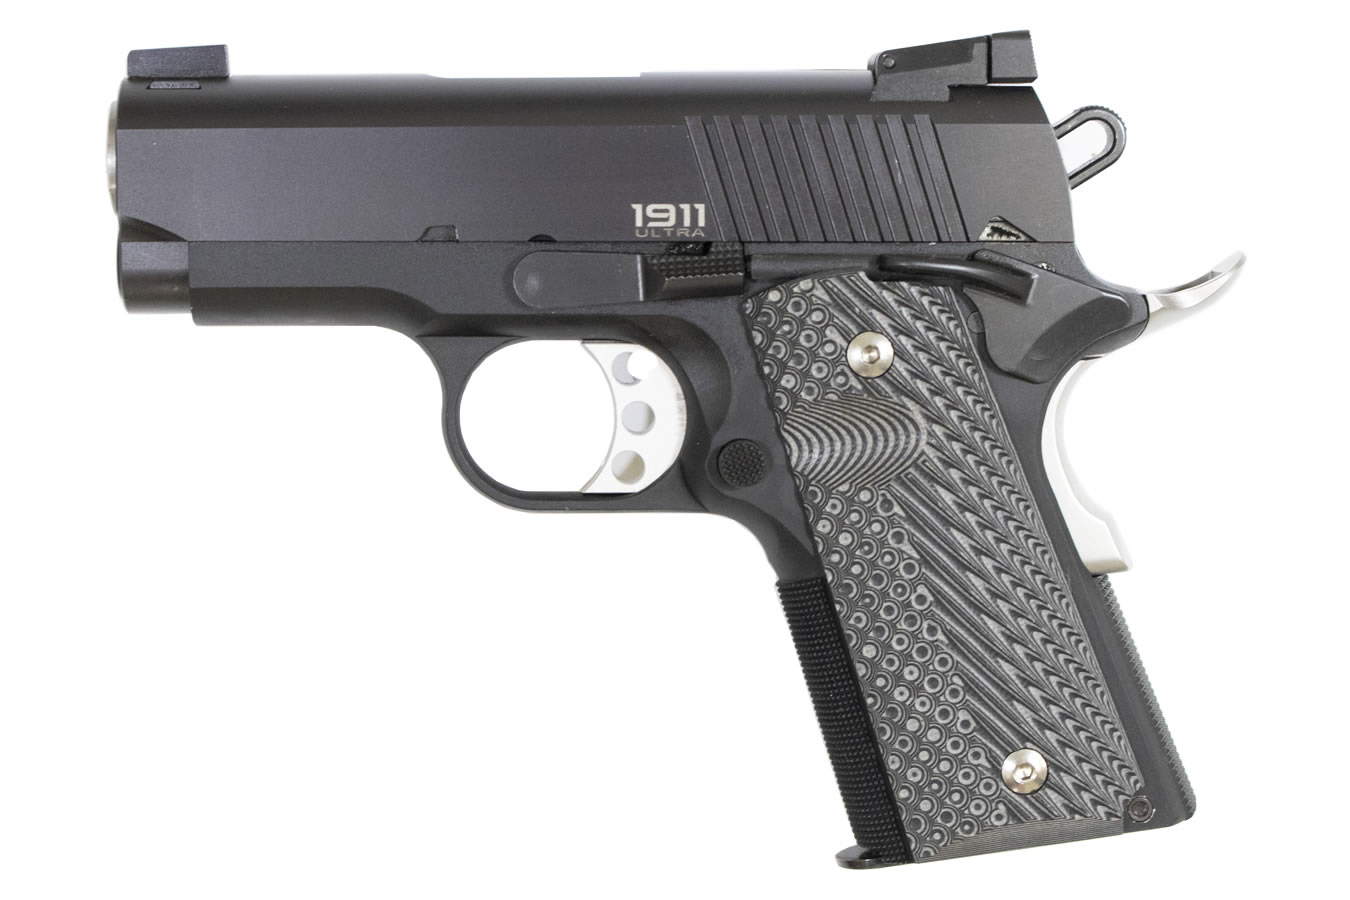 No. 16 Best Selling: BUL 1911 ULTRA 45 ACP BLACK COMPACT PISTOL